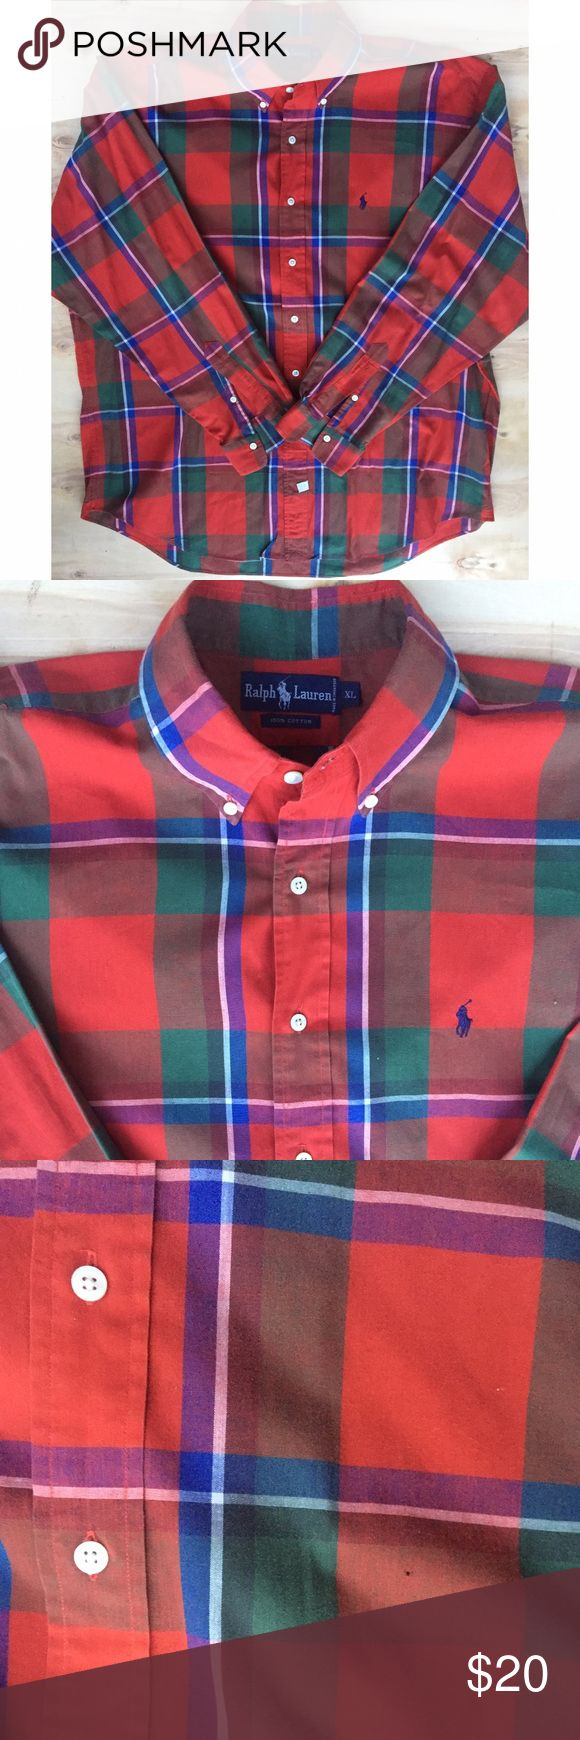 Polo Ralph Lauren red flannel shirt vintage XL Very cool vintage shirt a few pin holes loose threads but no big deal Polo by Ralph Lauren Shirts Dress Shirts